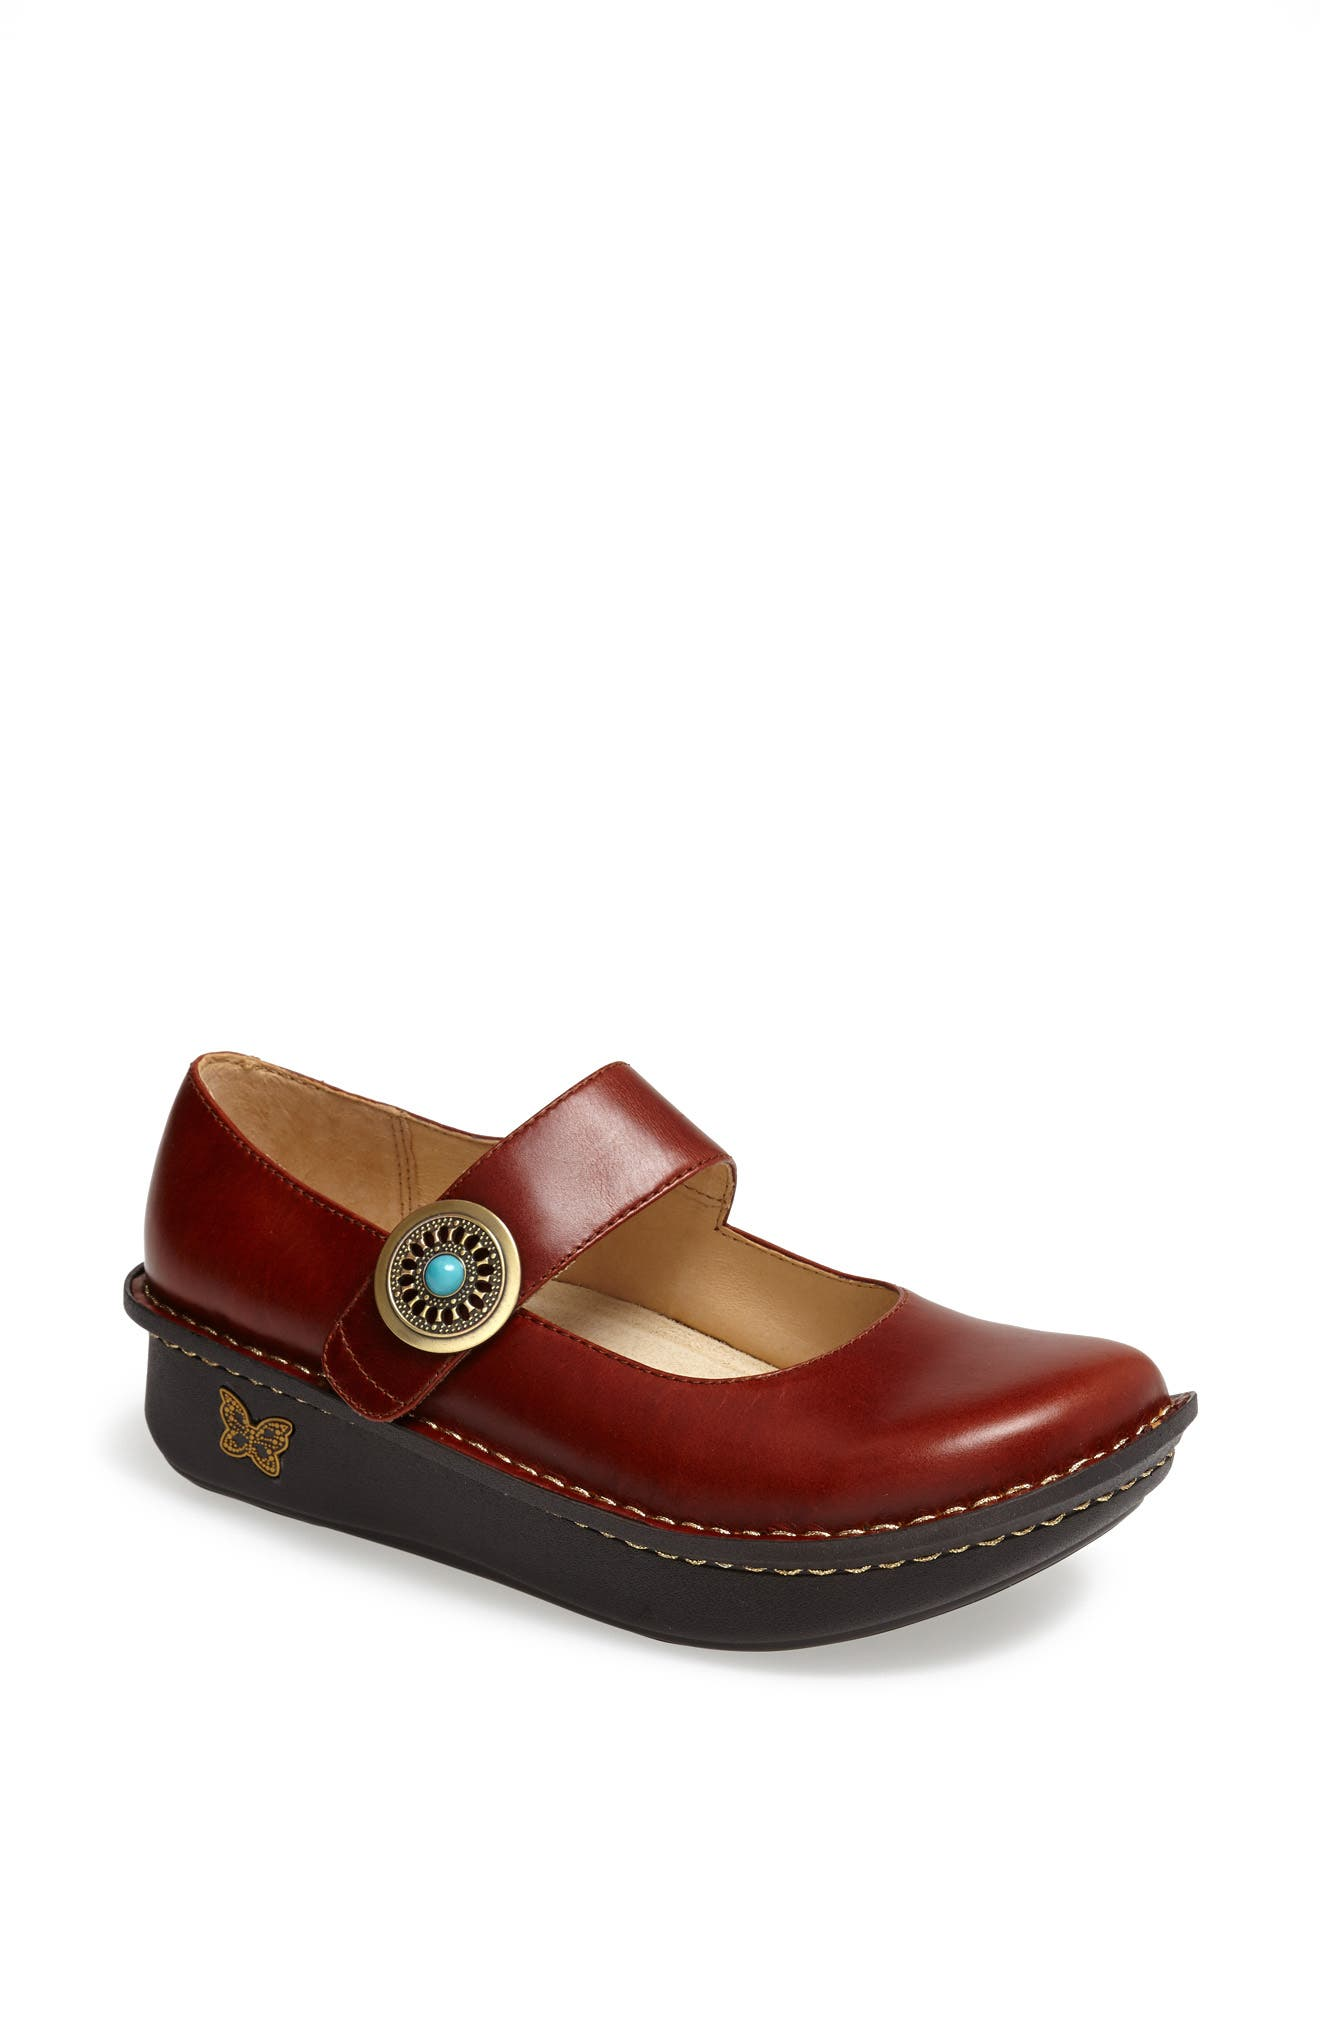 d63445f5f8c70 Women's Alegria Shoes | Nordstrom